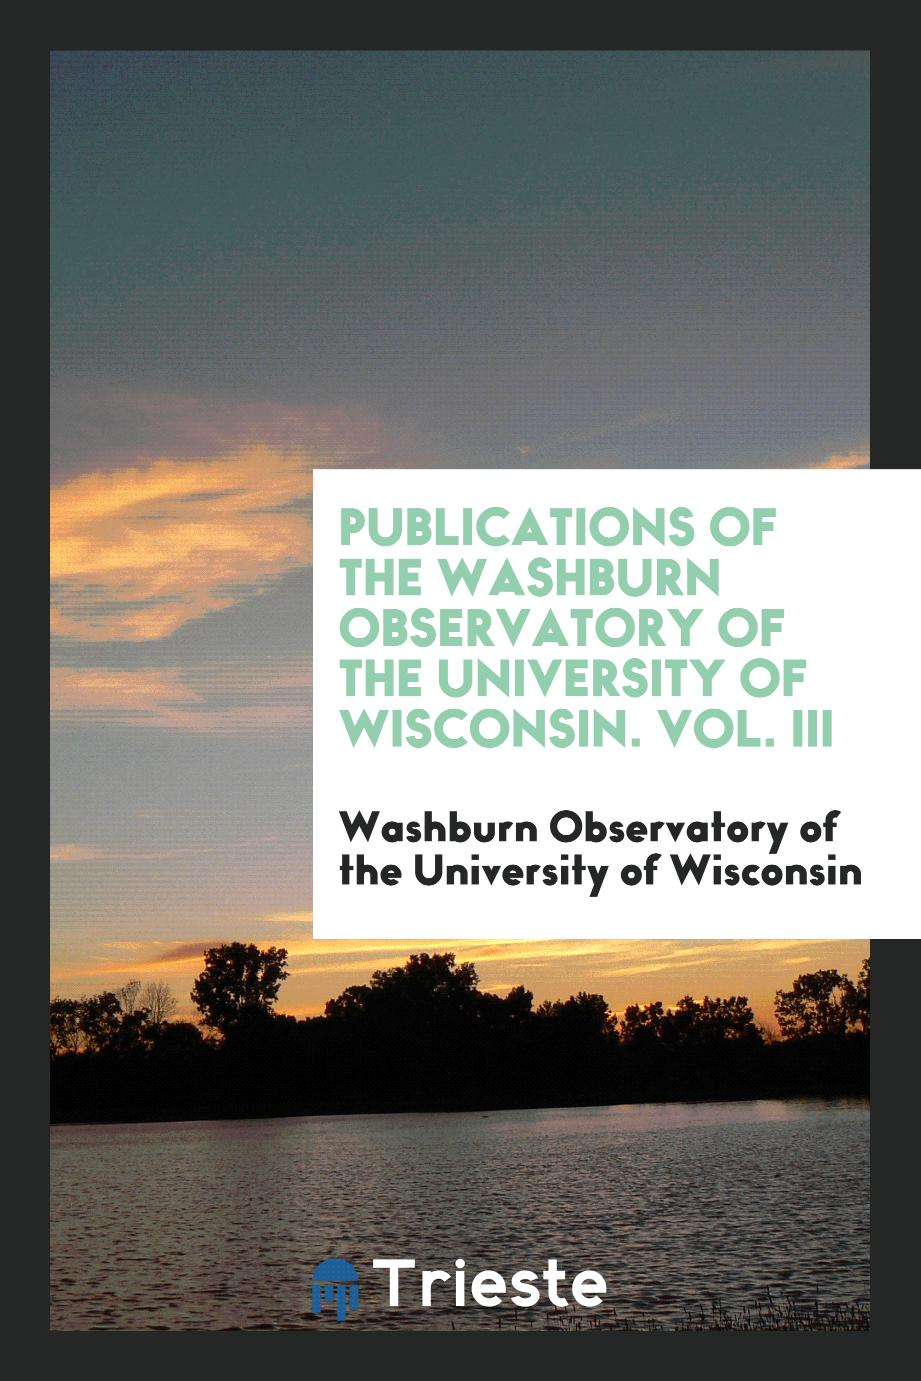 Publications of the Washburn Observatory of the University of Wisconsin. Vol. III